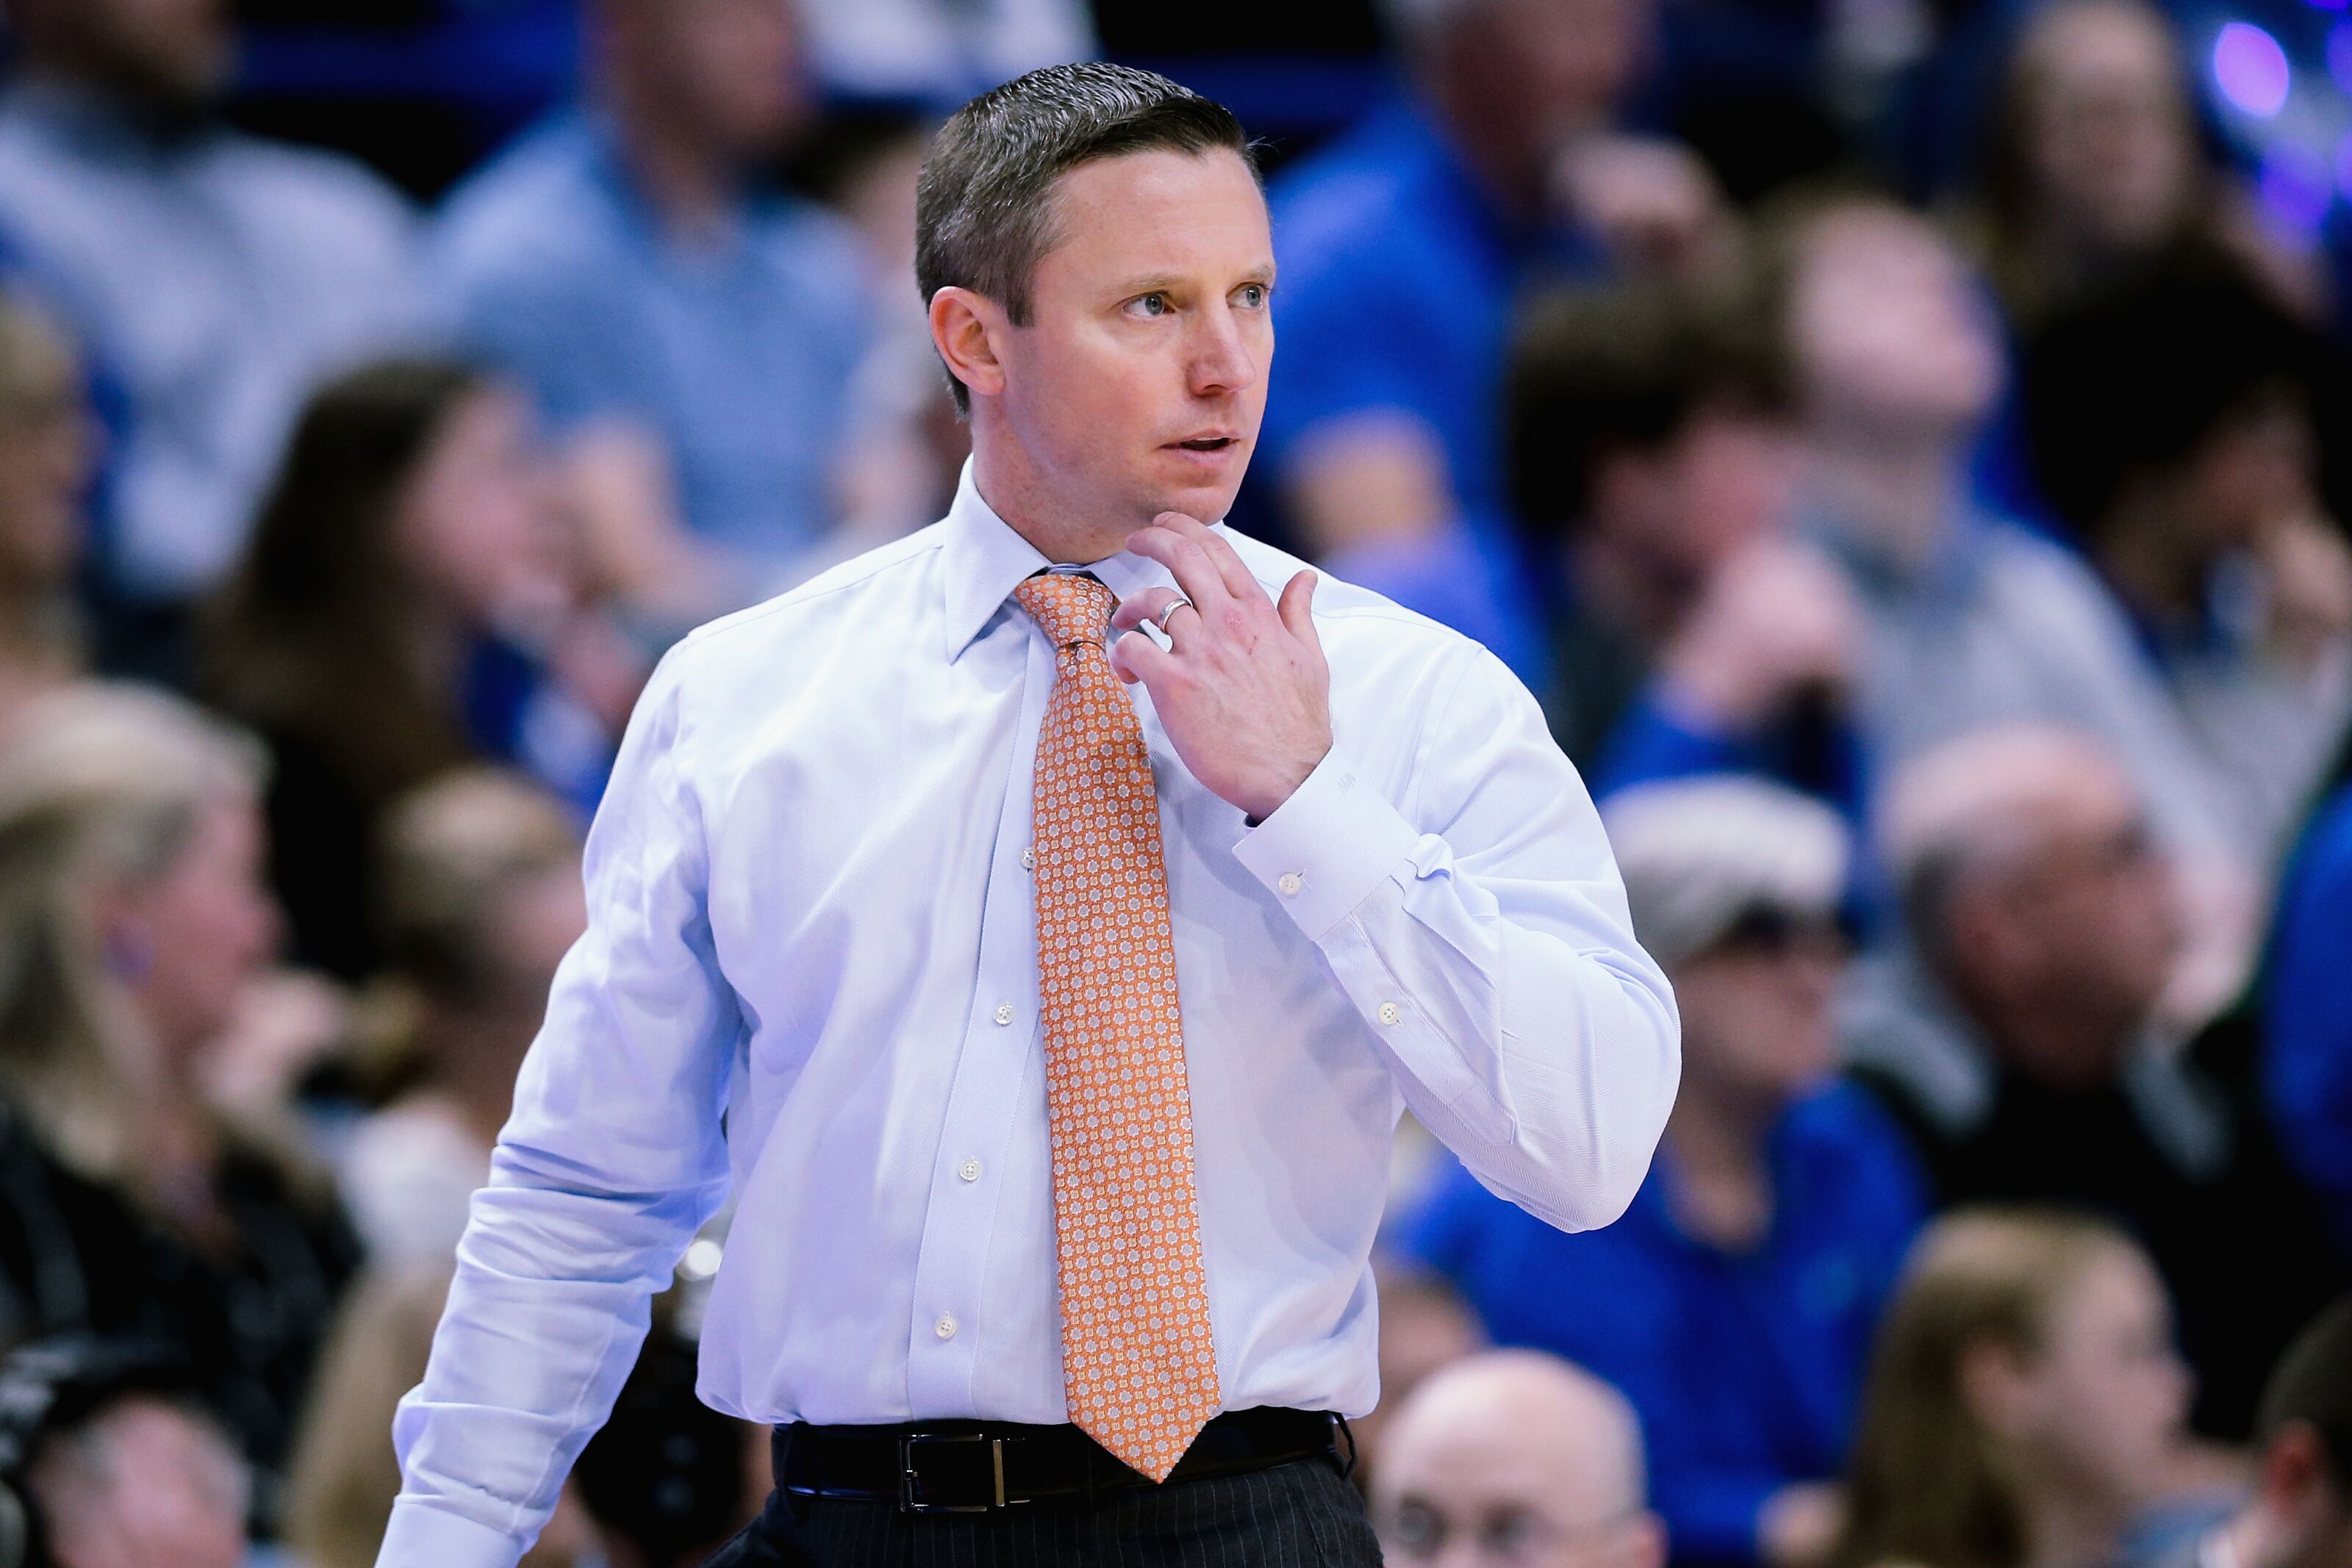 LEXINGTON, KENTUCKY - MARCH 09: Head coach Mike White of the Florida Gators looks on in the first half against the Kentucky Wildcats at Rupp Arena on March 09, 2019 in Lexington, Kentucky. (Photo by Dylan Buell/Getty Images)